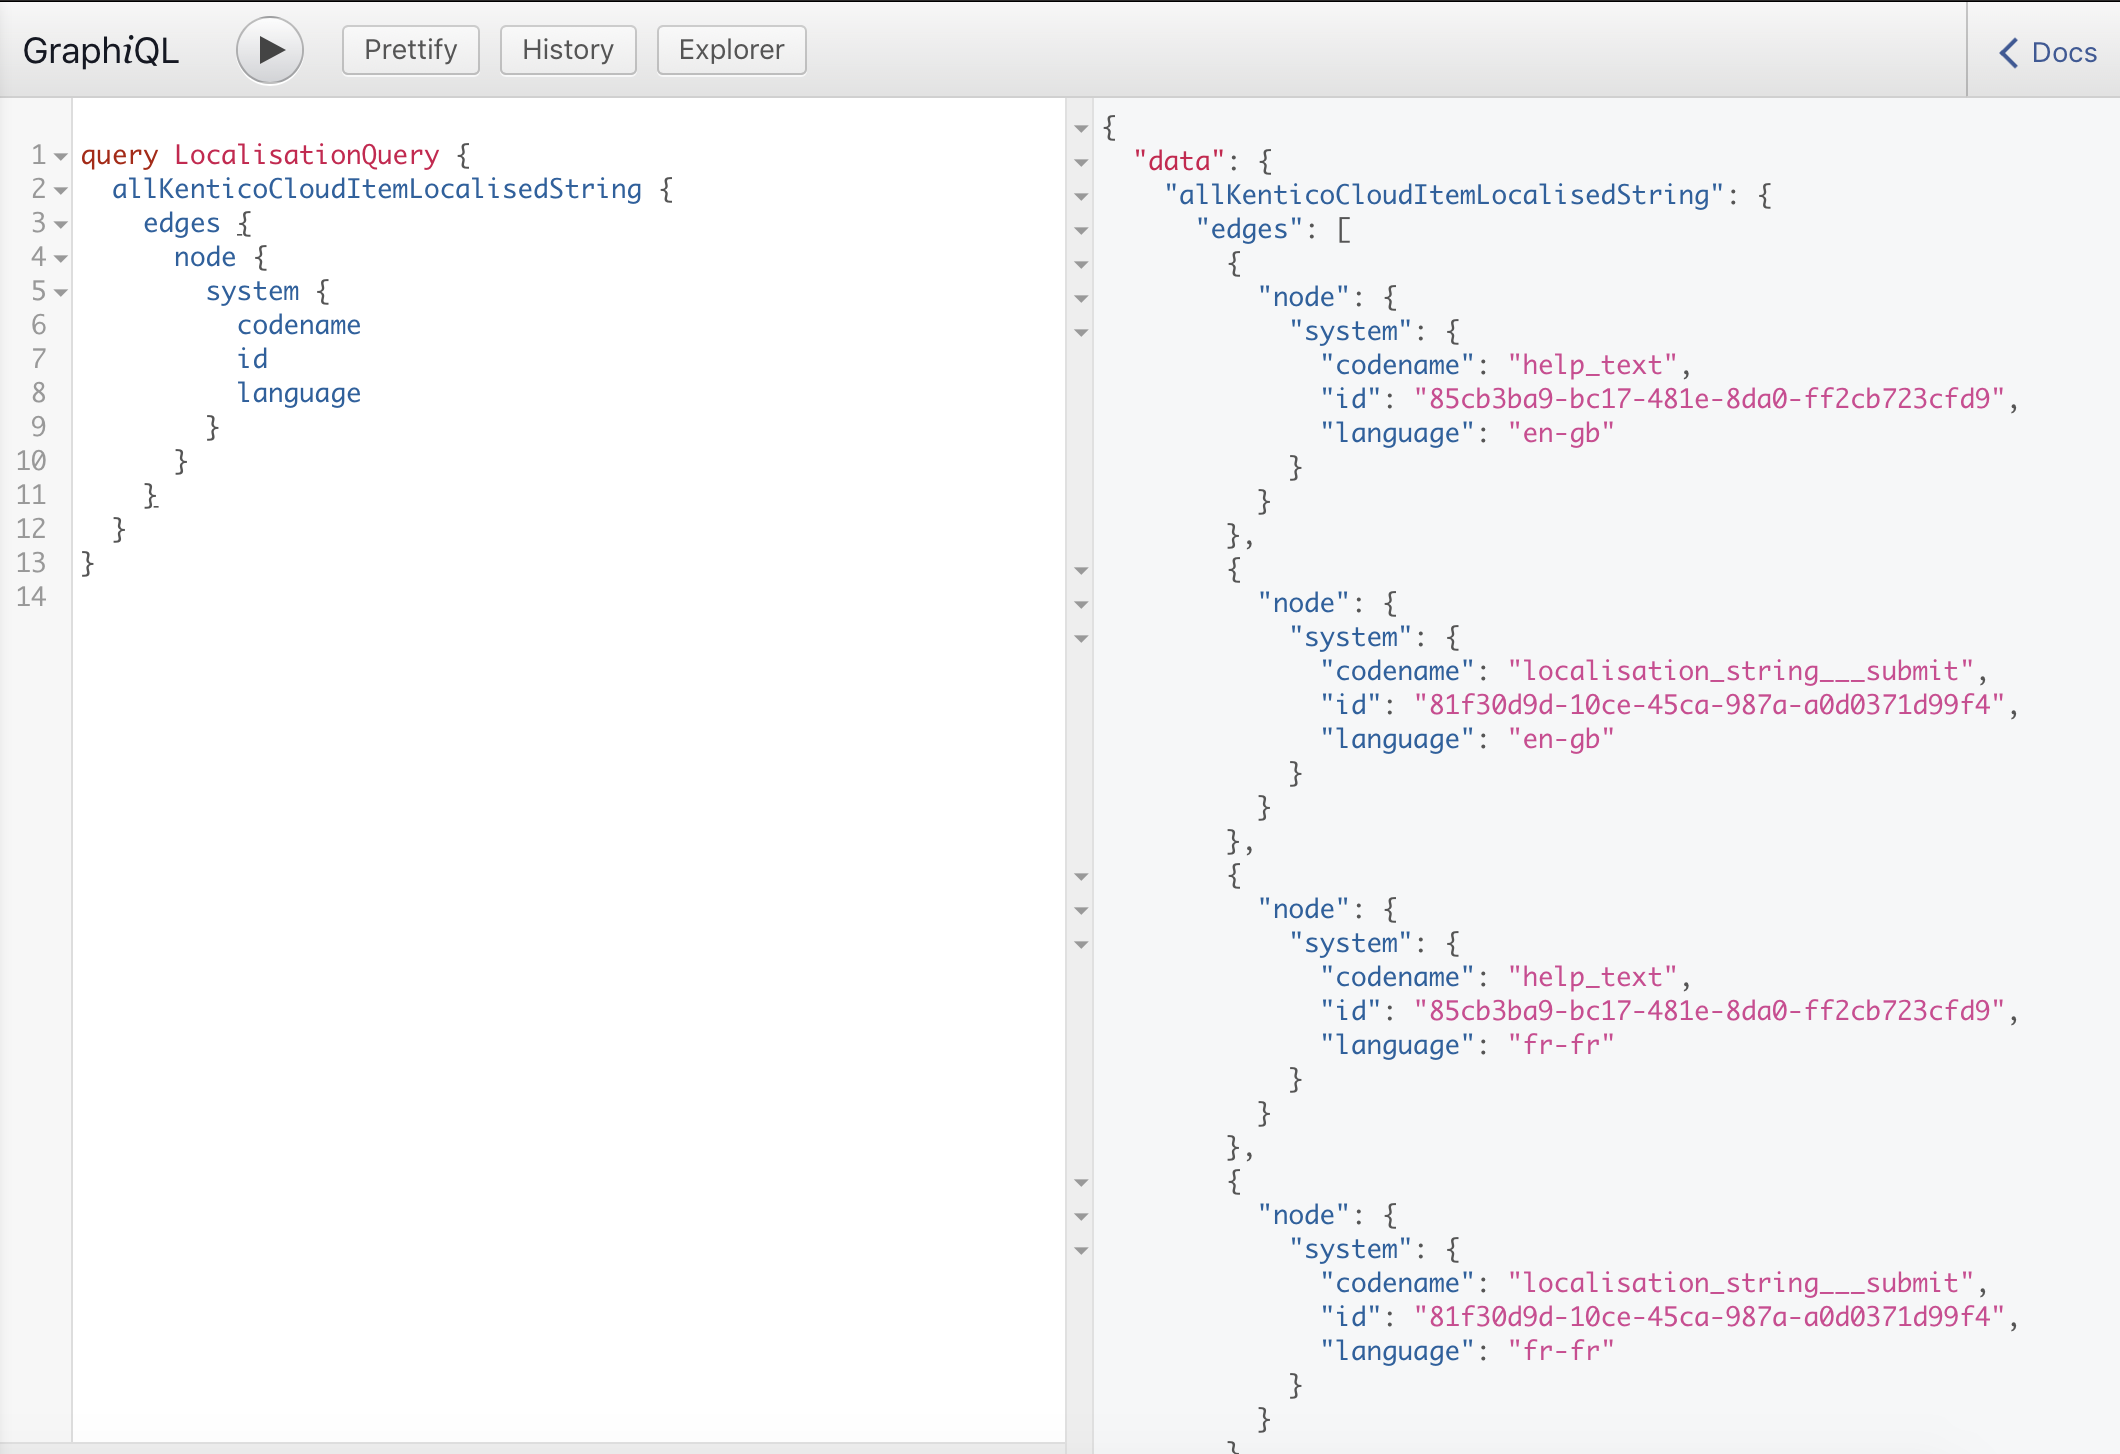 A view of the GraphiQL preview of retrieving language nodes